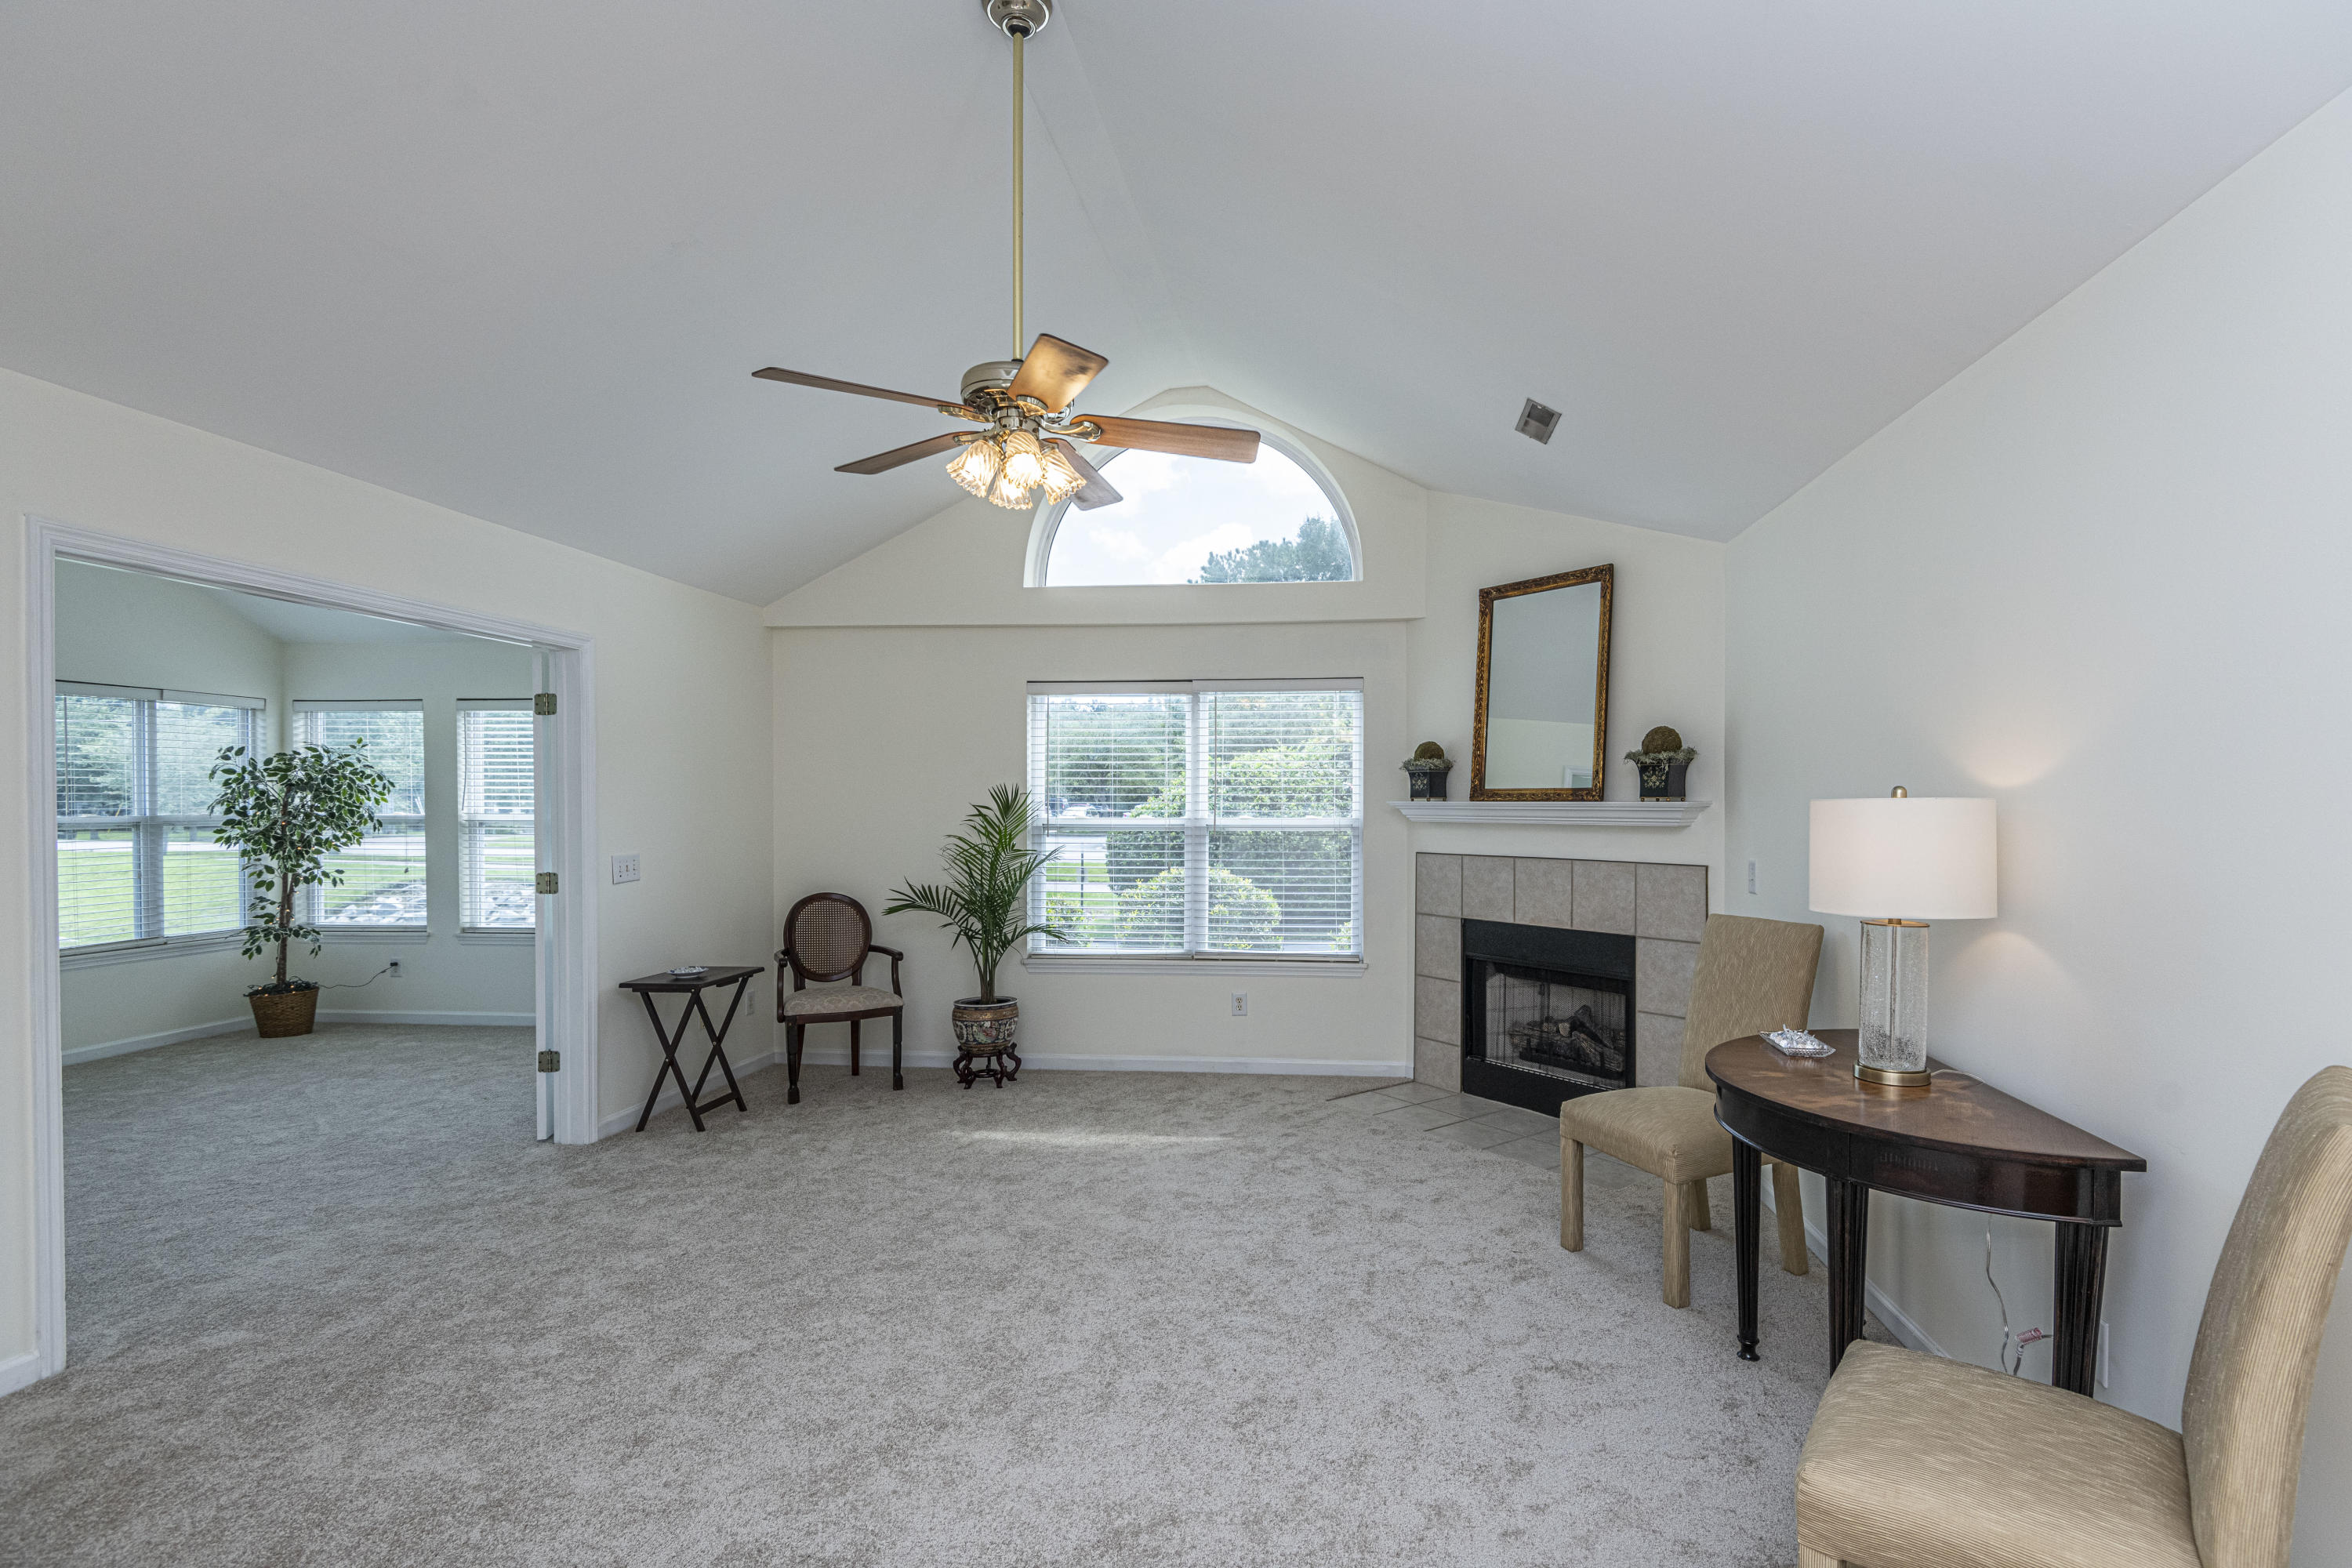 Village at West Ashley Homes For Sale - 3524 Mary Ader, Charleston, SC - 18